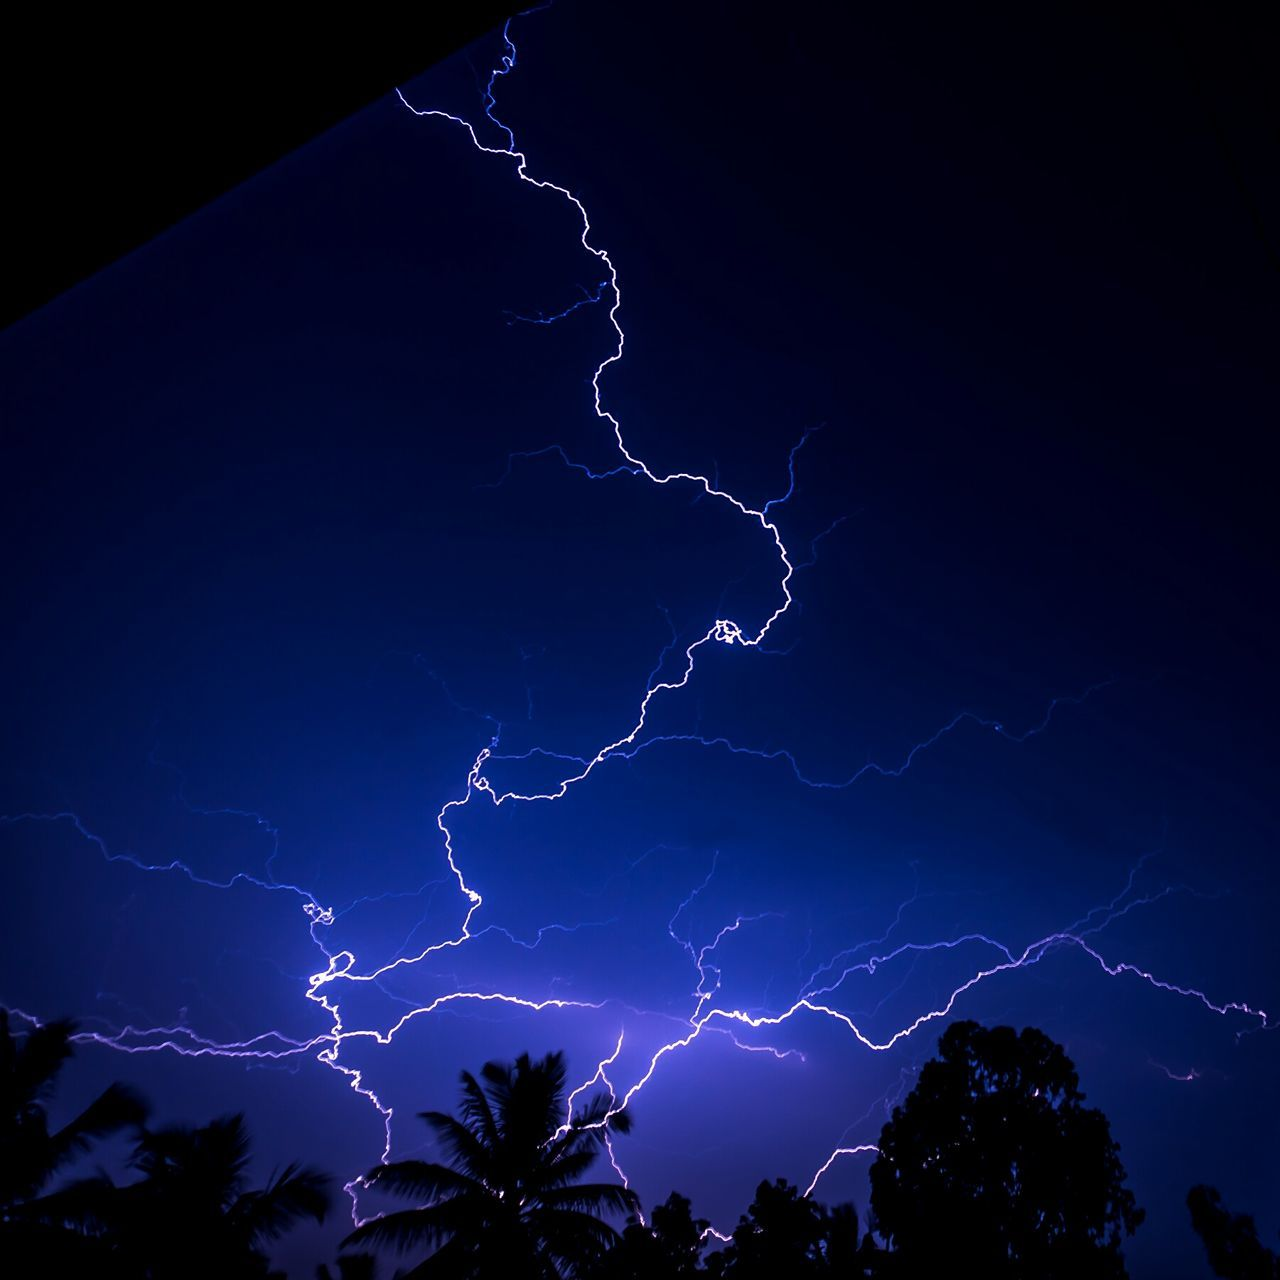 lightning, power in nature, forked lightning, night, beauty in nature, thunderstorm, storm, weather, dramatic sky, nature, silhouette, scenics, sky, danger, outdoors, electricity, no people, tree, blue, tranquility, low angle view, illuminated, storm cloud